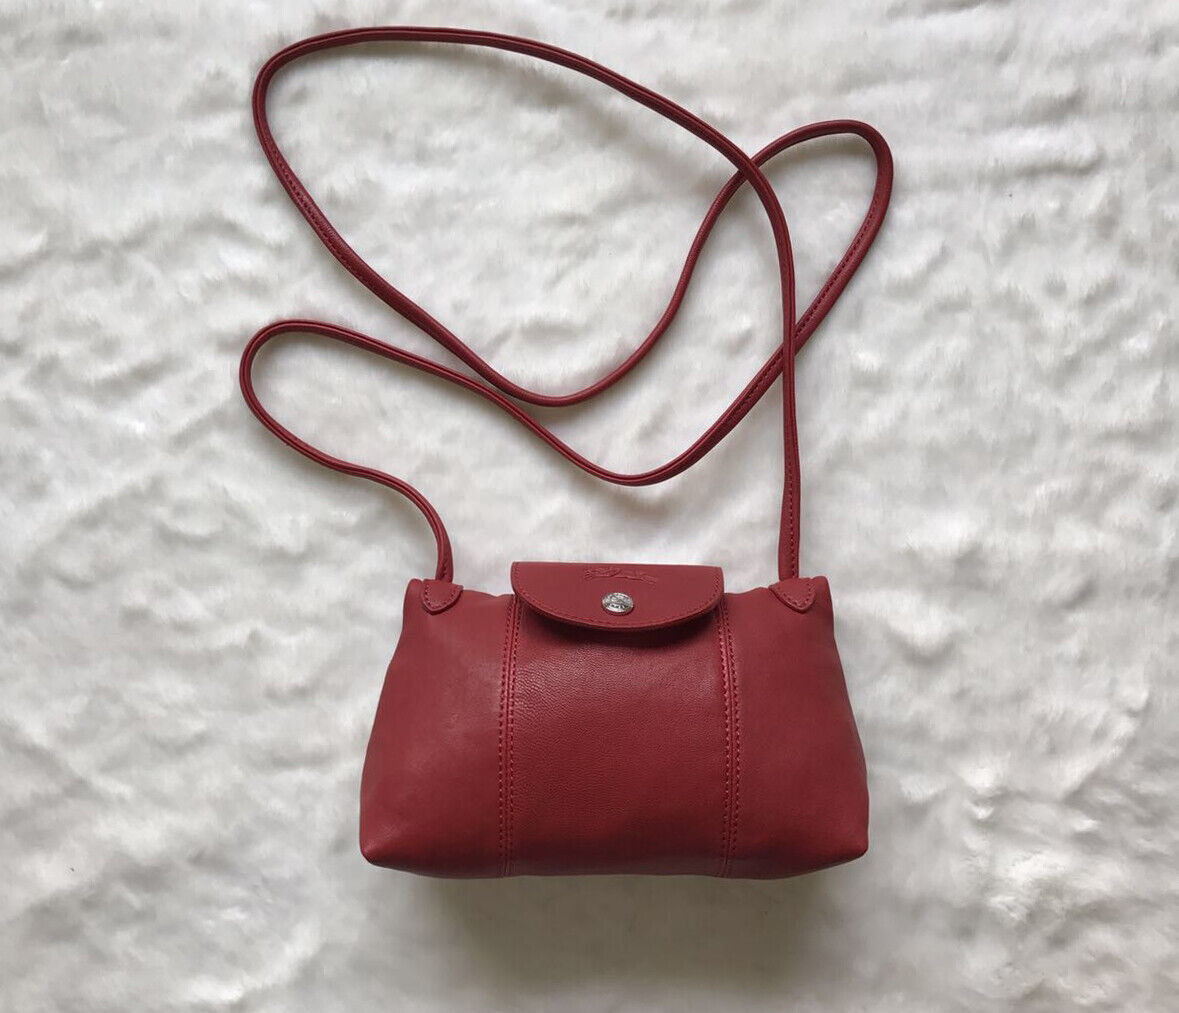 Longchamp Le Pliage Cuir Leather Crossbody Bag Red Lacquer ...